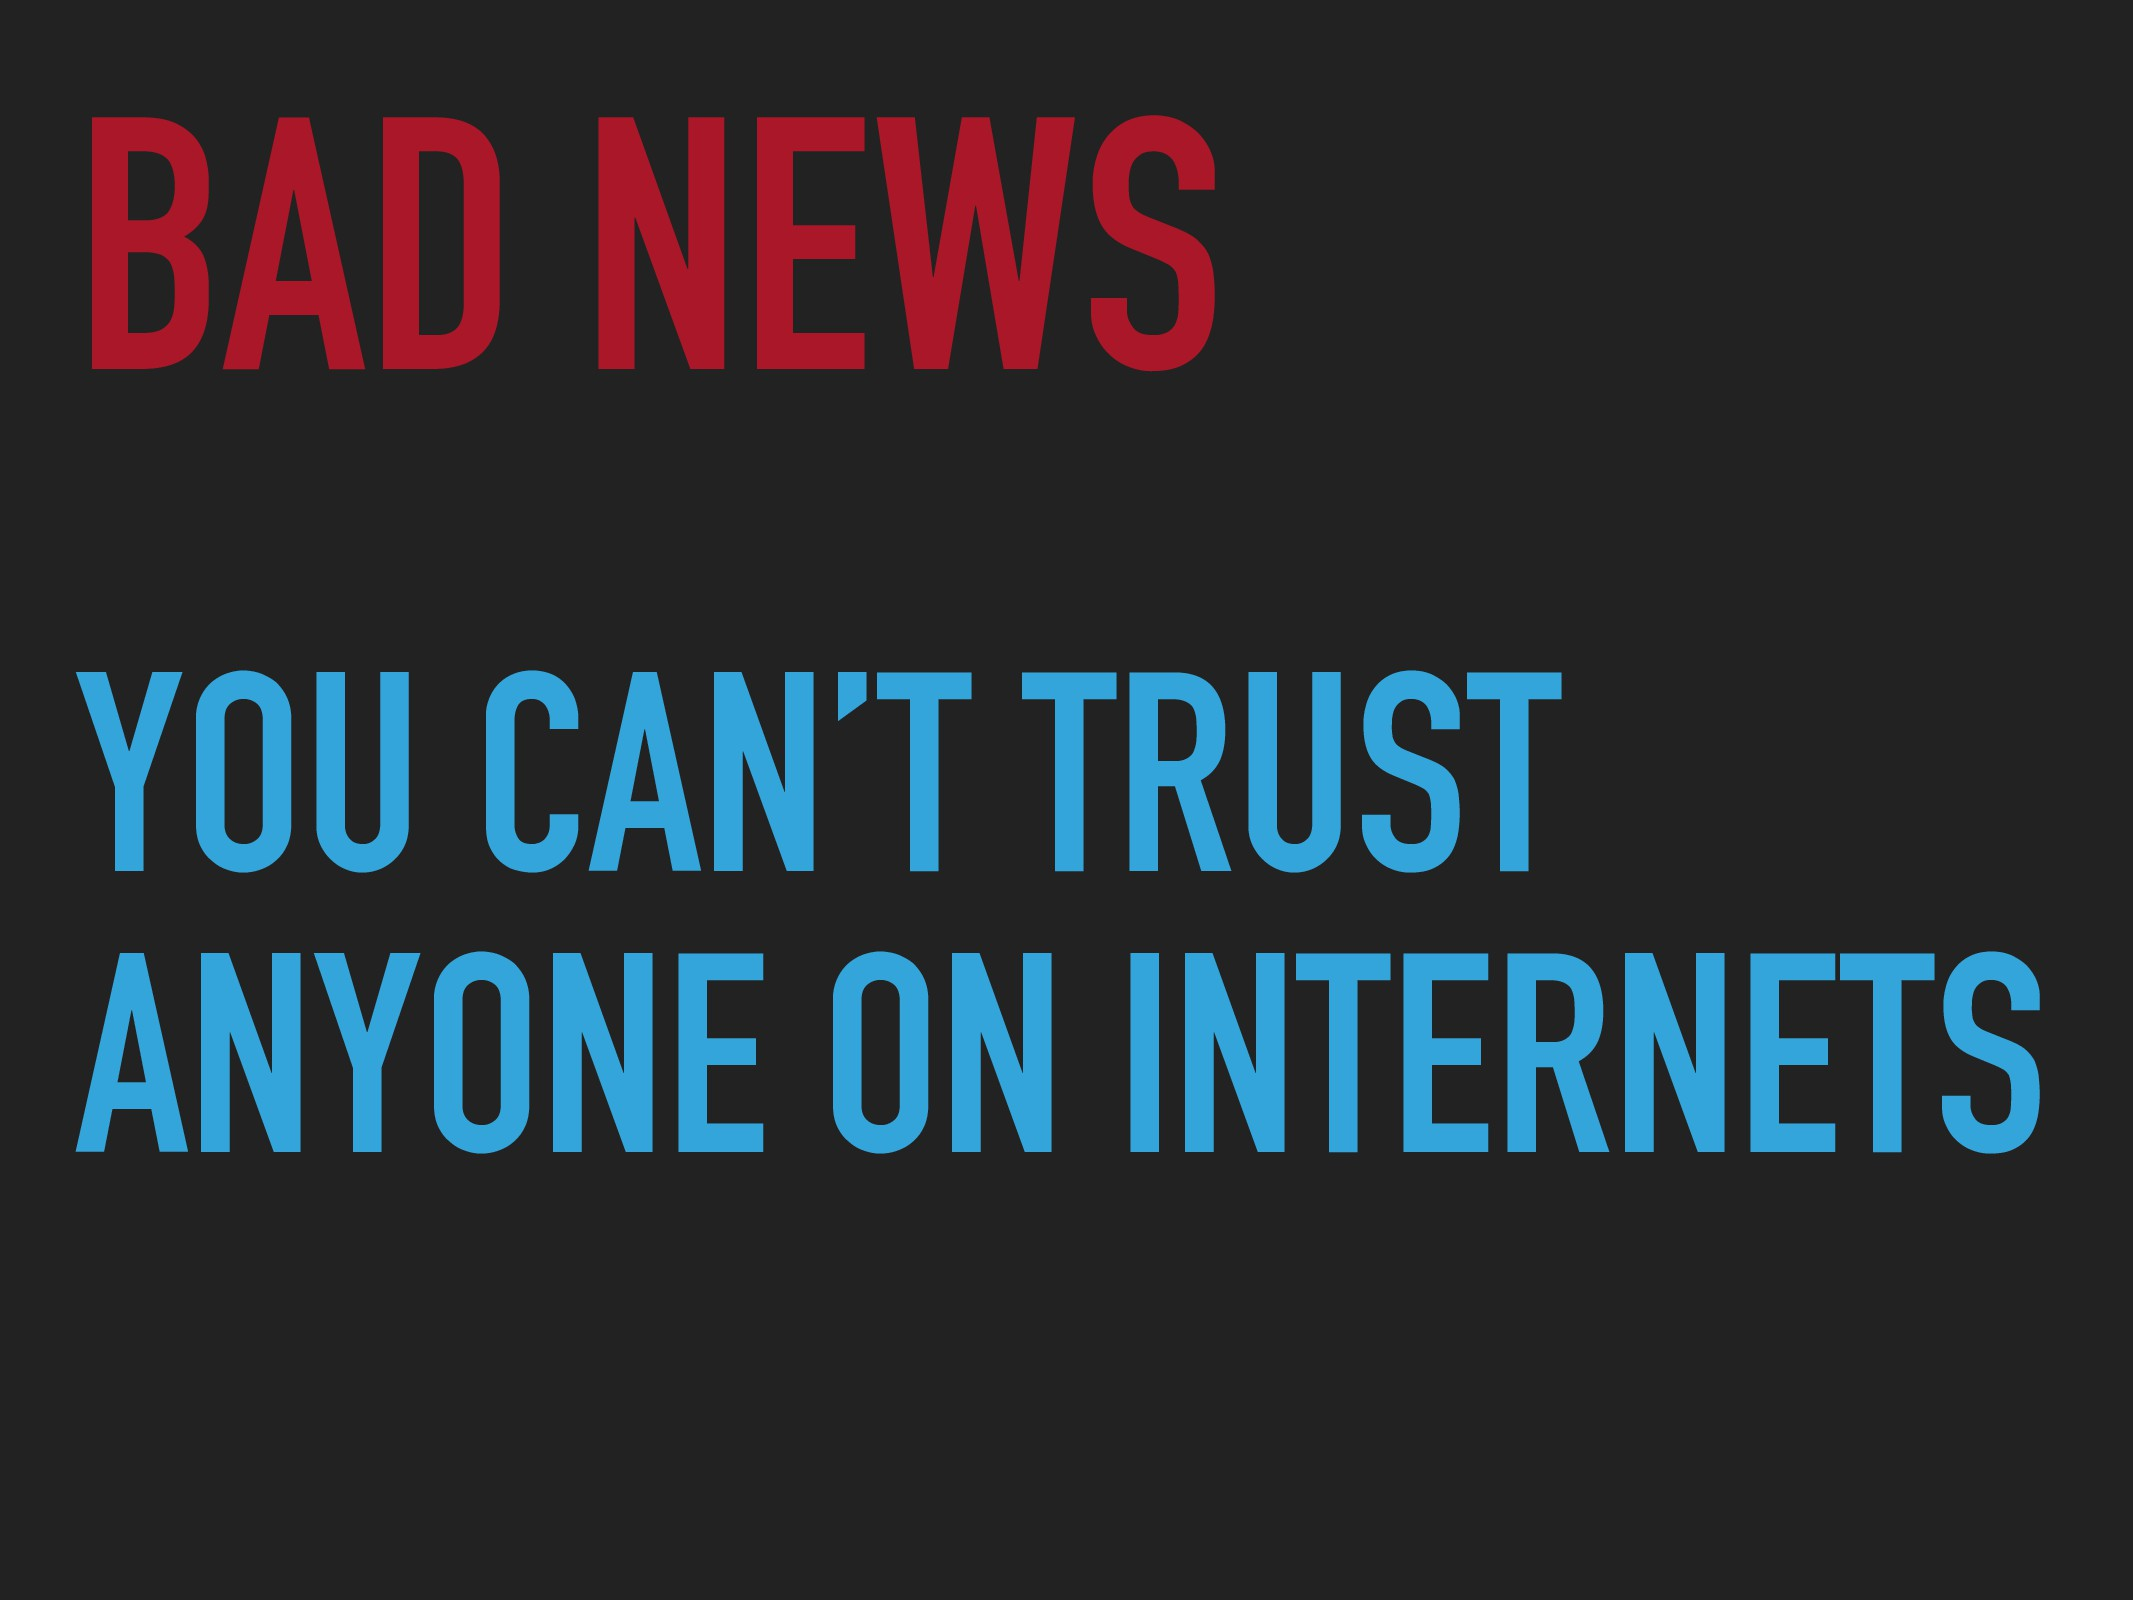 YOU CAN'T TRUST ANYONE ON INTERNETS BAD NEWS